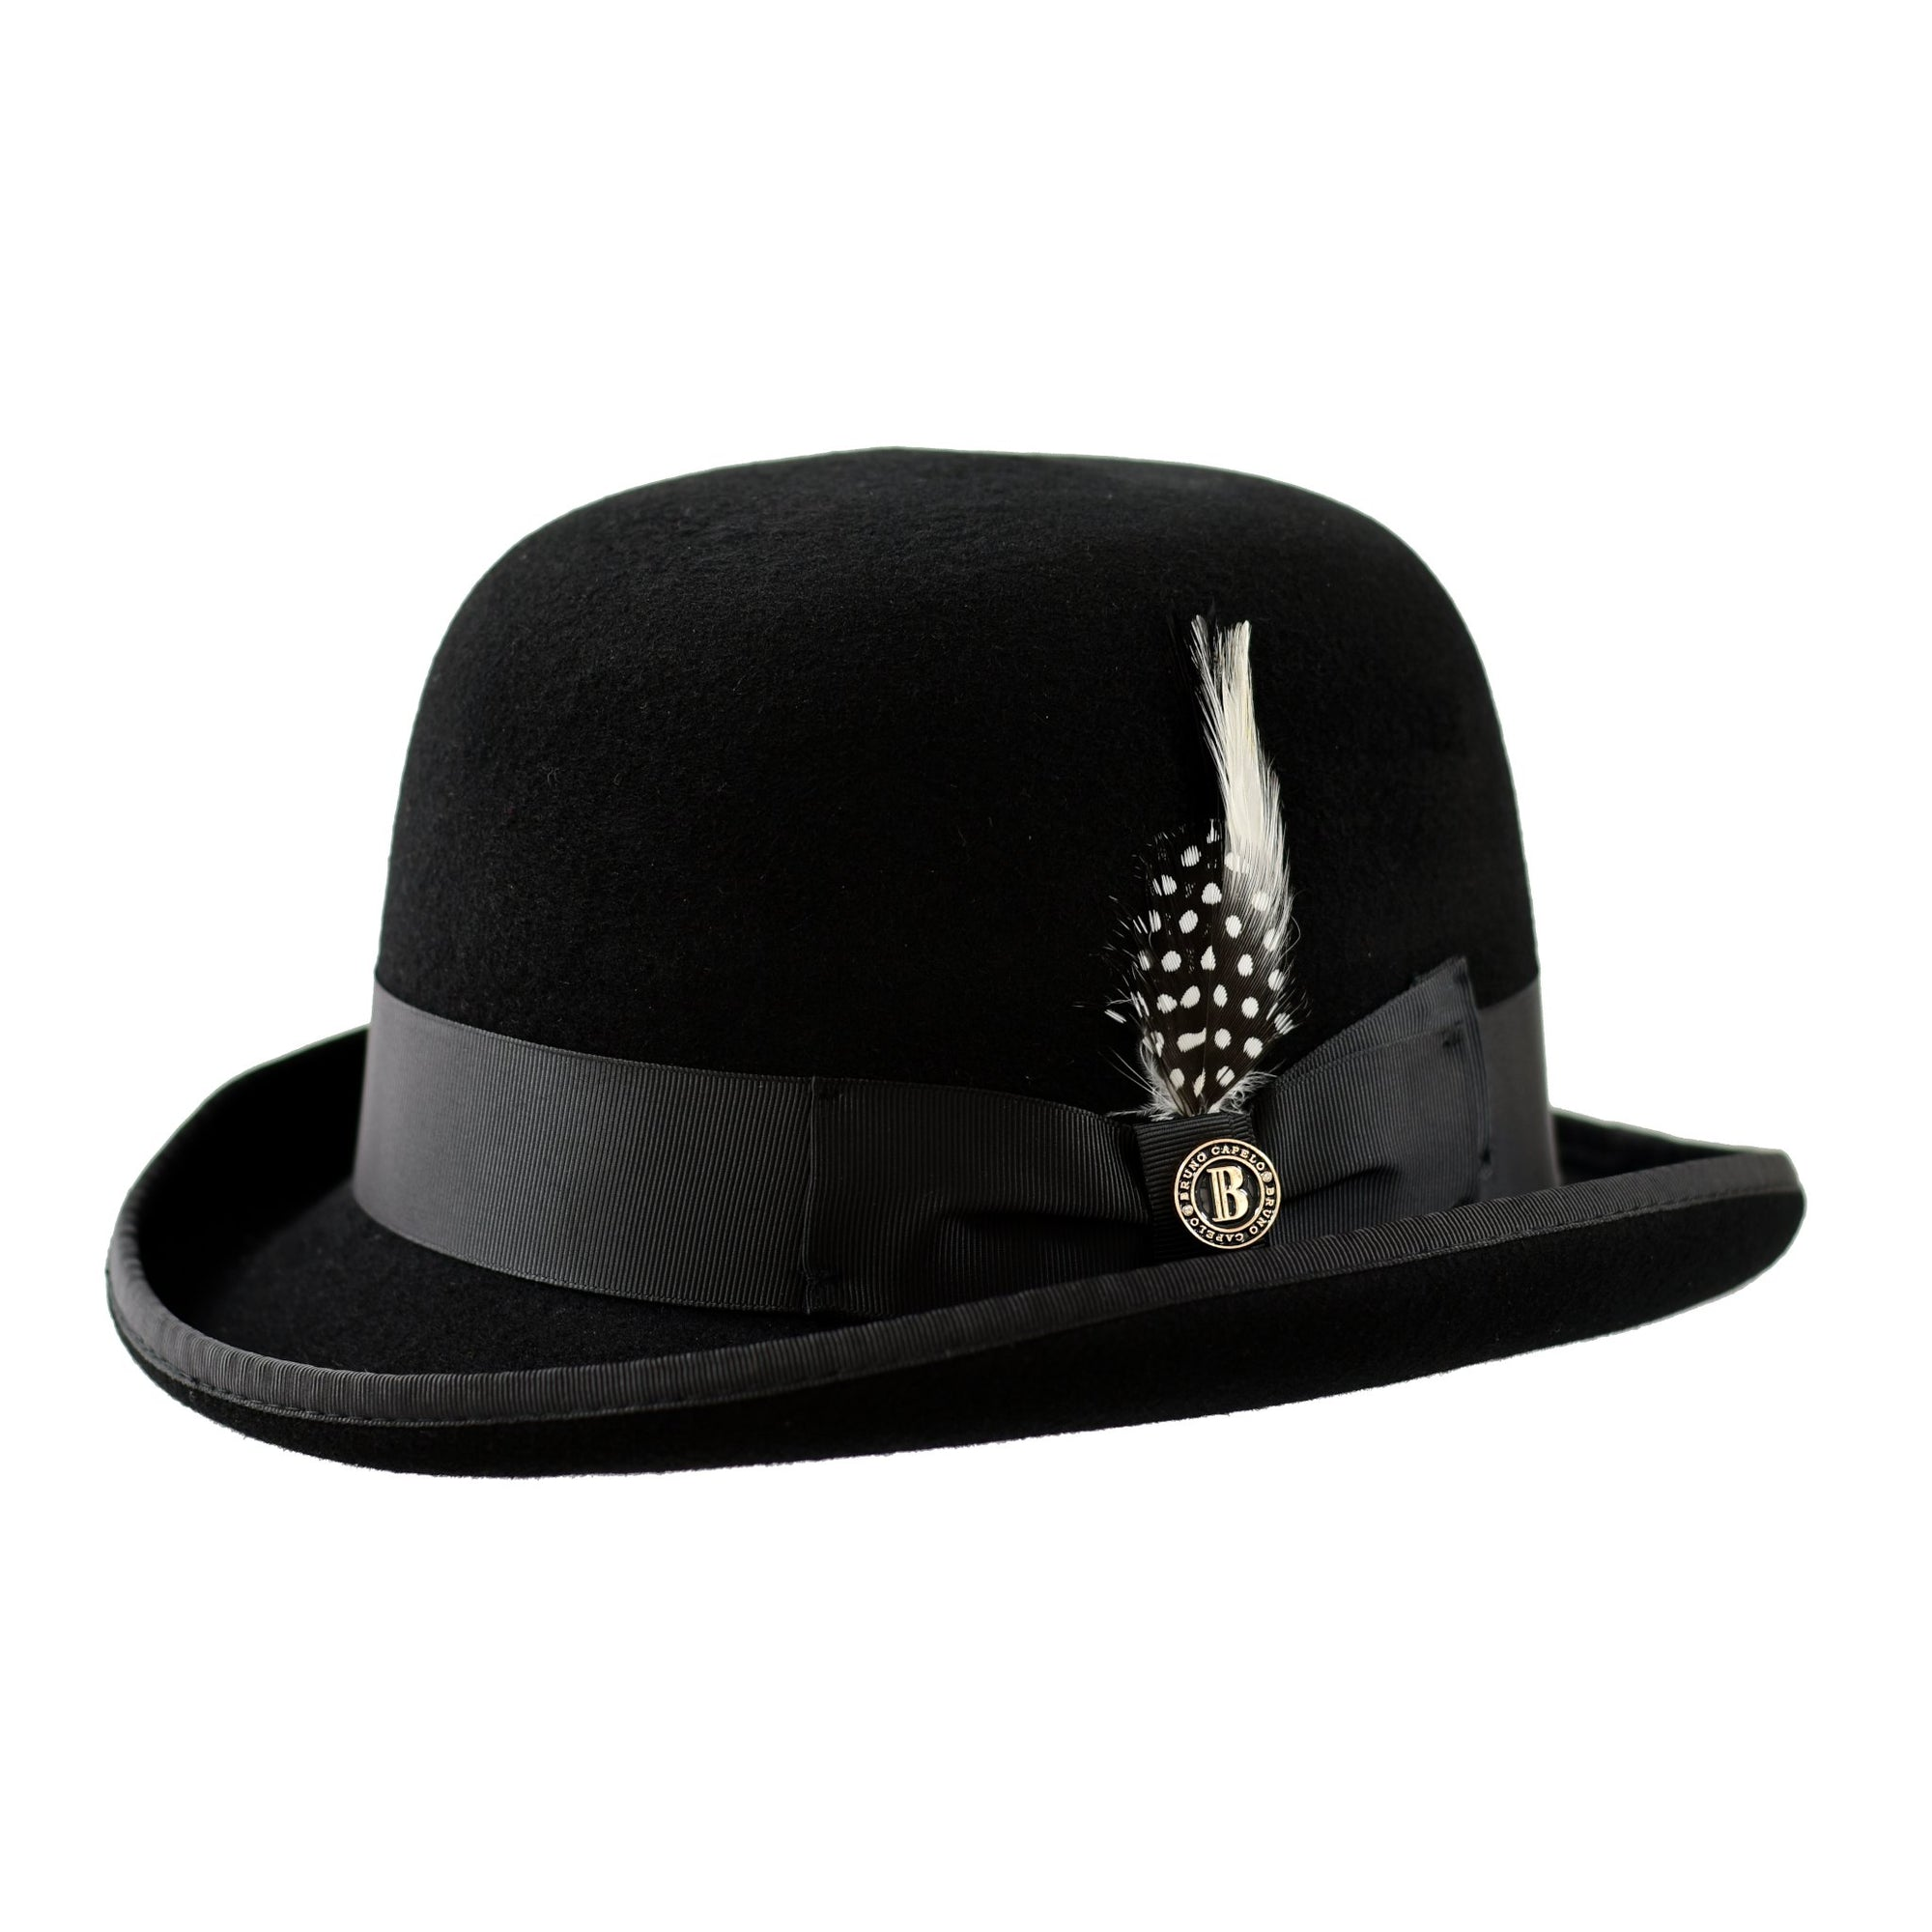 Bruno Capelo The Bowler Wool Derby Hat